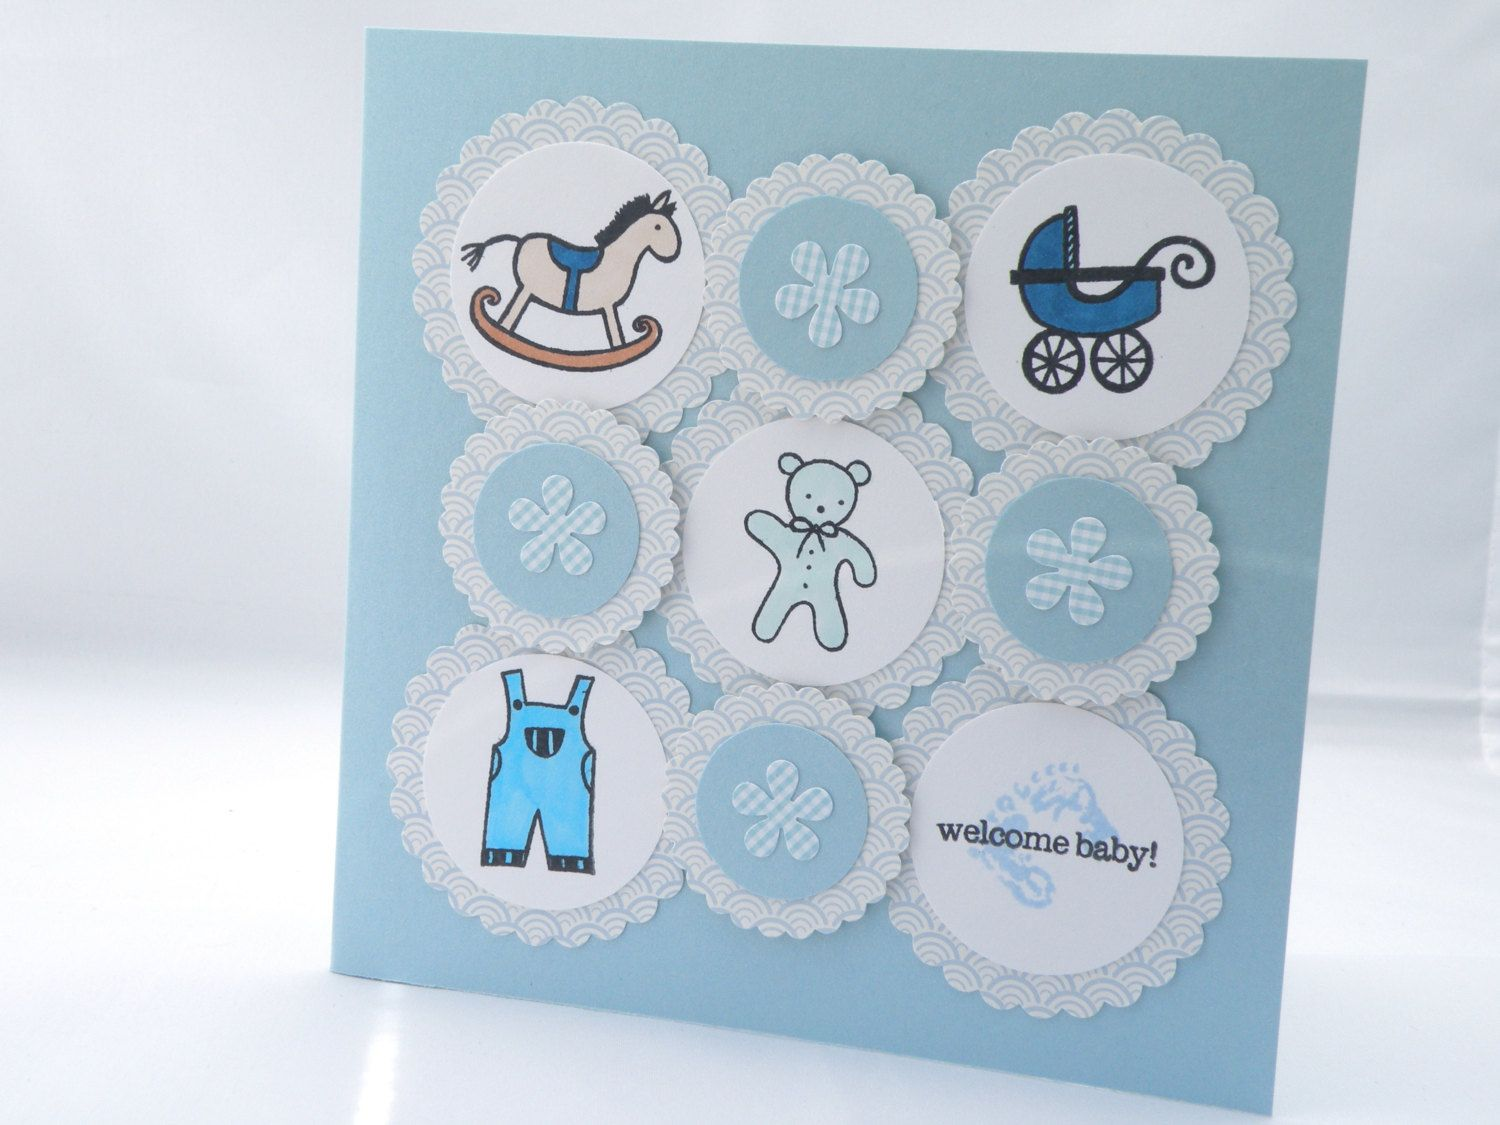 "Foto: Reprodução / <a href=""https://www.etsy.com/pt/listing/123144437/hand-crafted-blue-baby-card?ref=shop_home_active_13"" target=""_blank"">Etsy</a>"